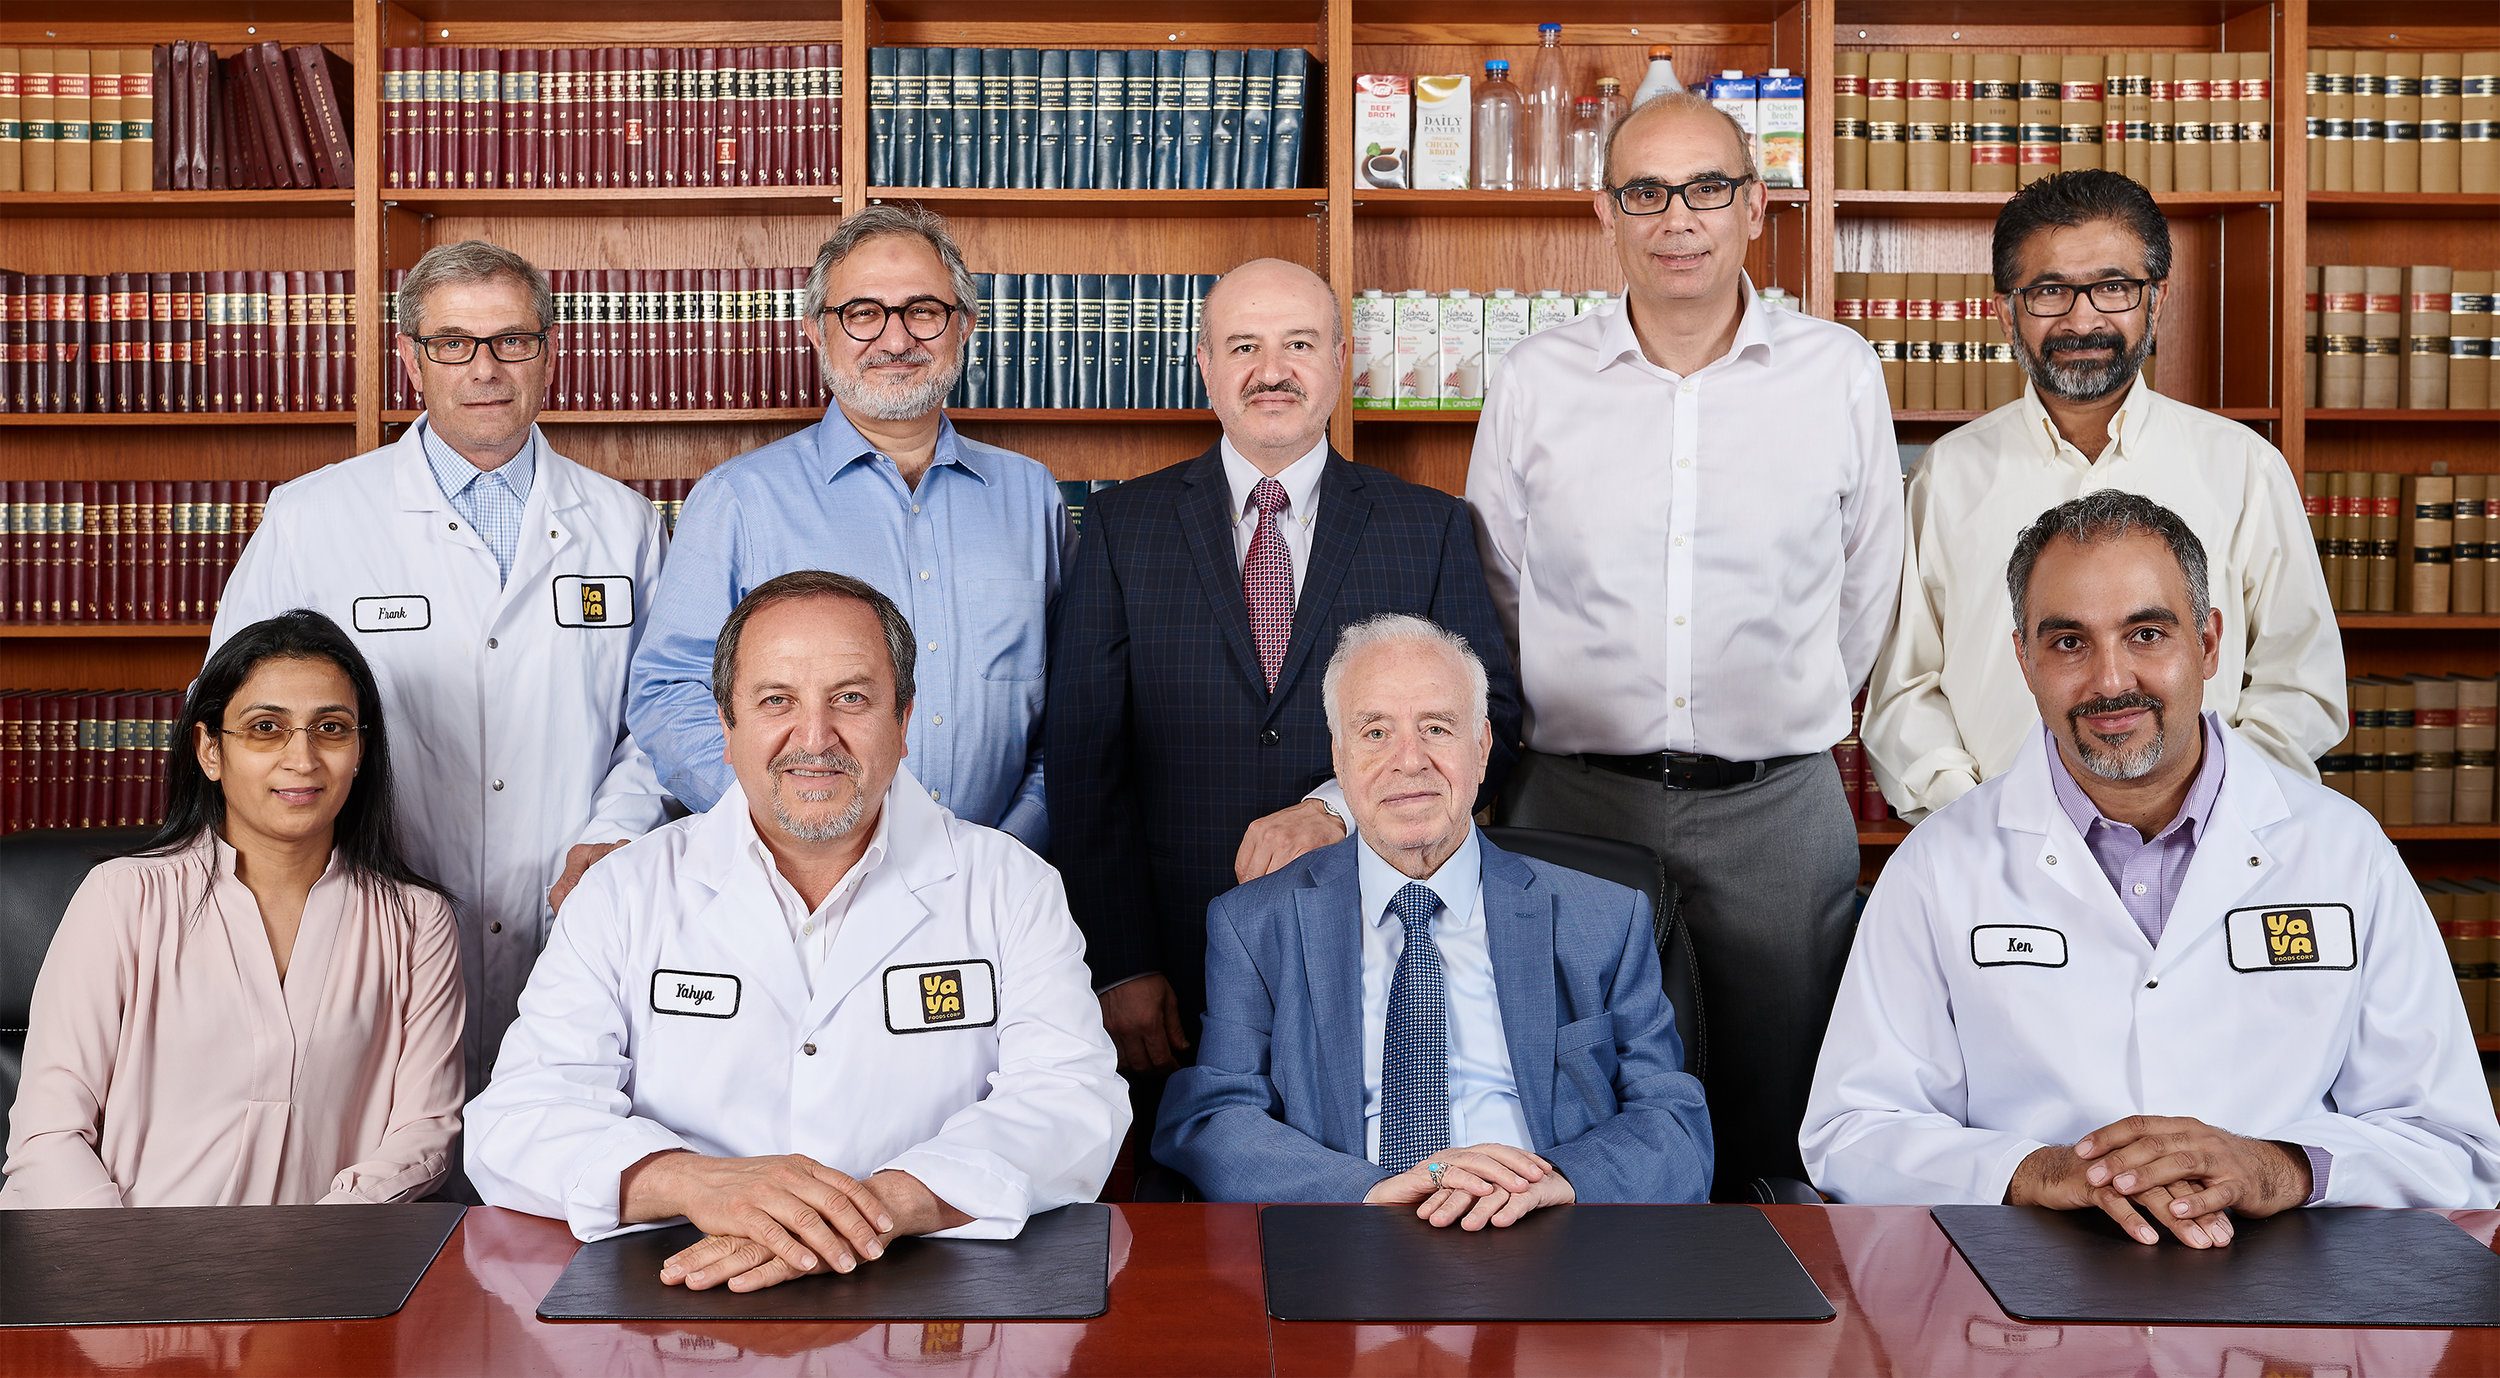 Sitting from left to right:   Bosky Patel –  Director of Quality , Yahya Abbas –  President and CEO , Mr. Mohammed-Ali Al-Ali –  Chairman of the Board , Ken Xenophontos –  Manager of Commercialization . Standing from left:   Frank Cipparrone –  Director of Technologies and Key Accounts,  Hamid Meshkat –  COO,  Ahmed Al-Ali –  General Manager , Basil Khalil –  Director of Operations , Sanjiv Pandya –  Director of Human Resources